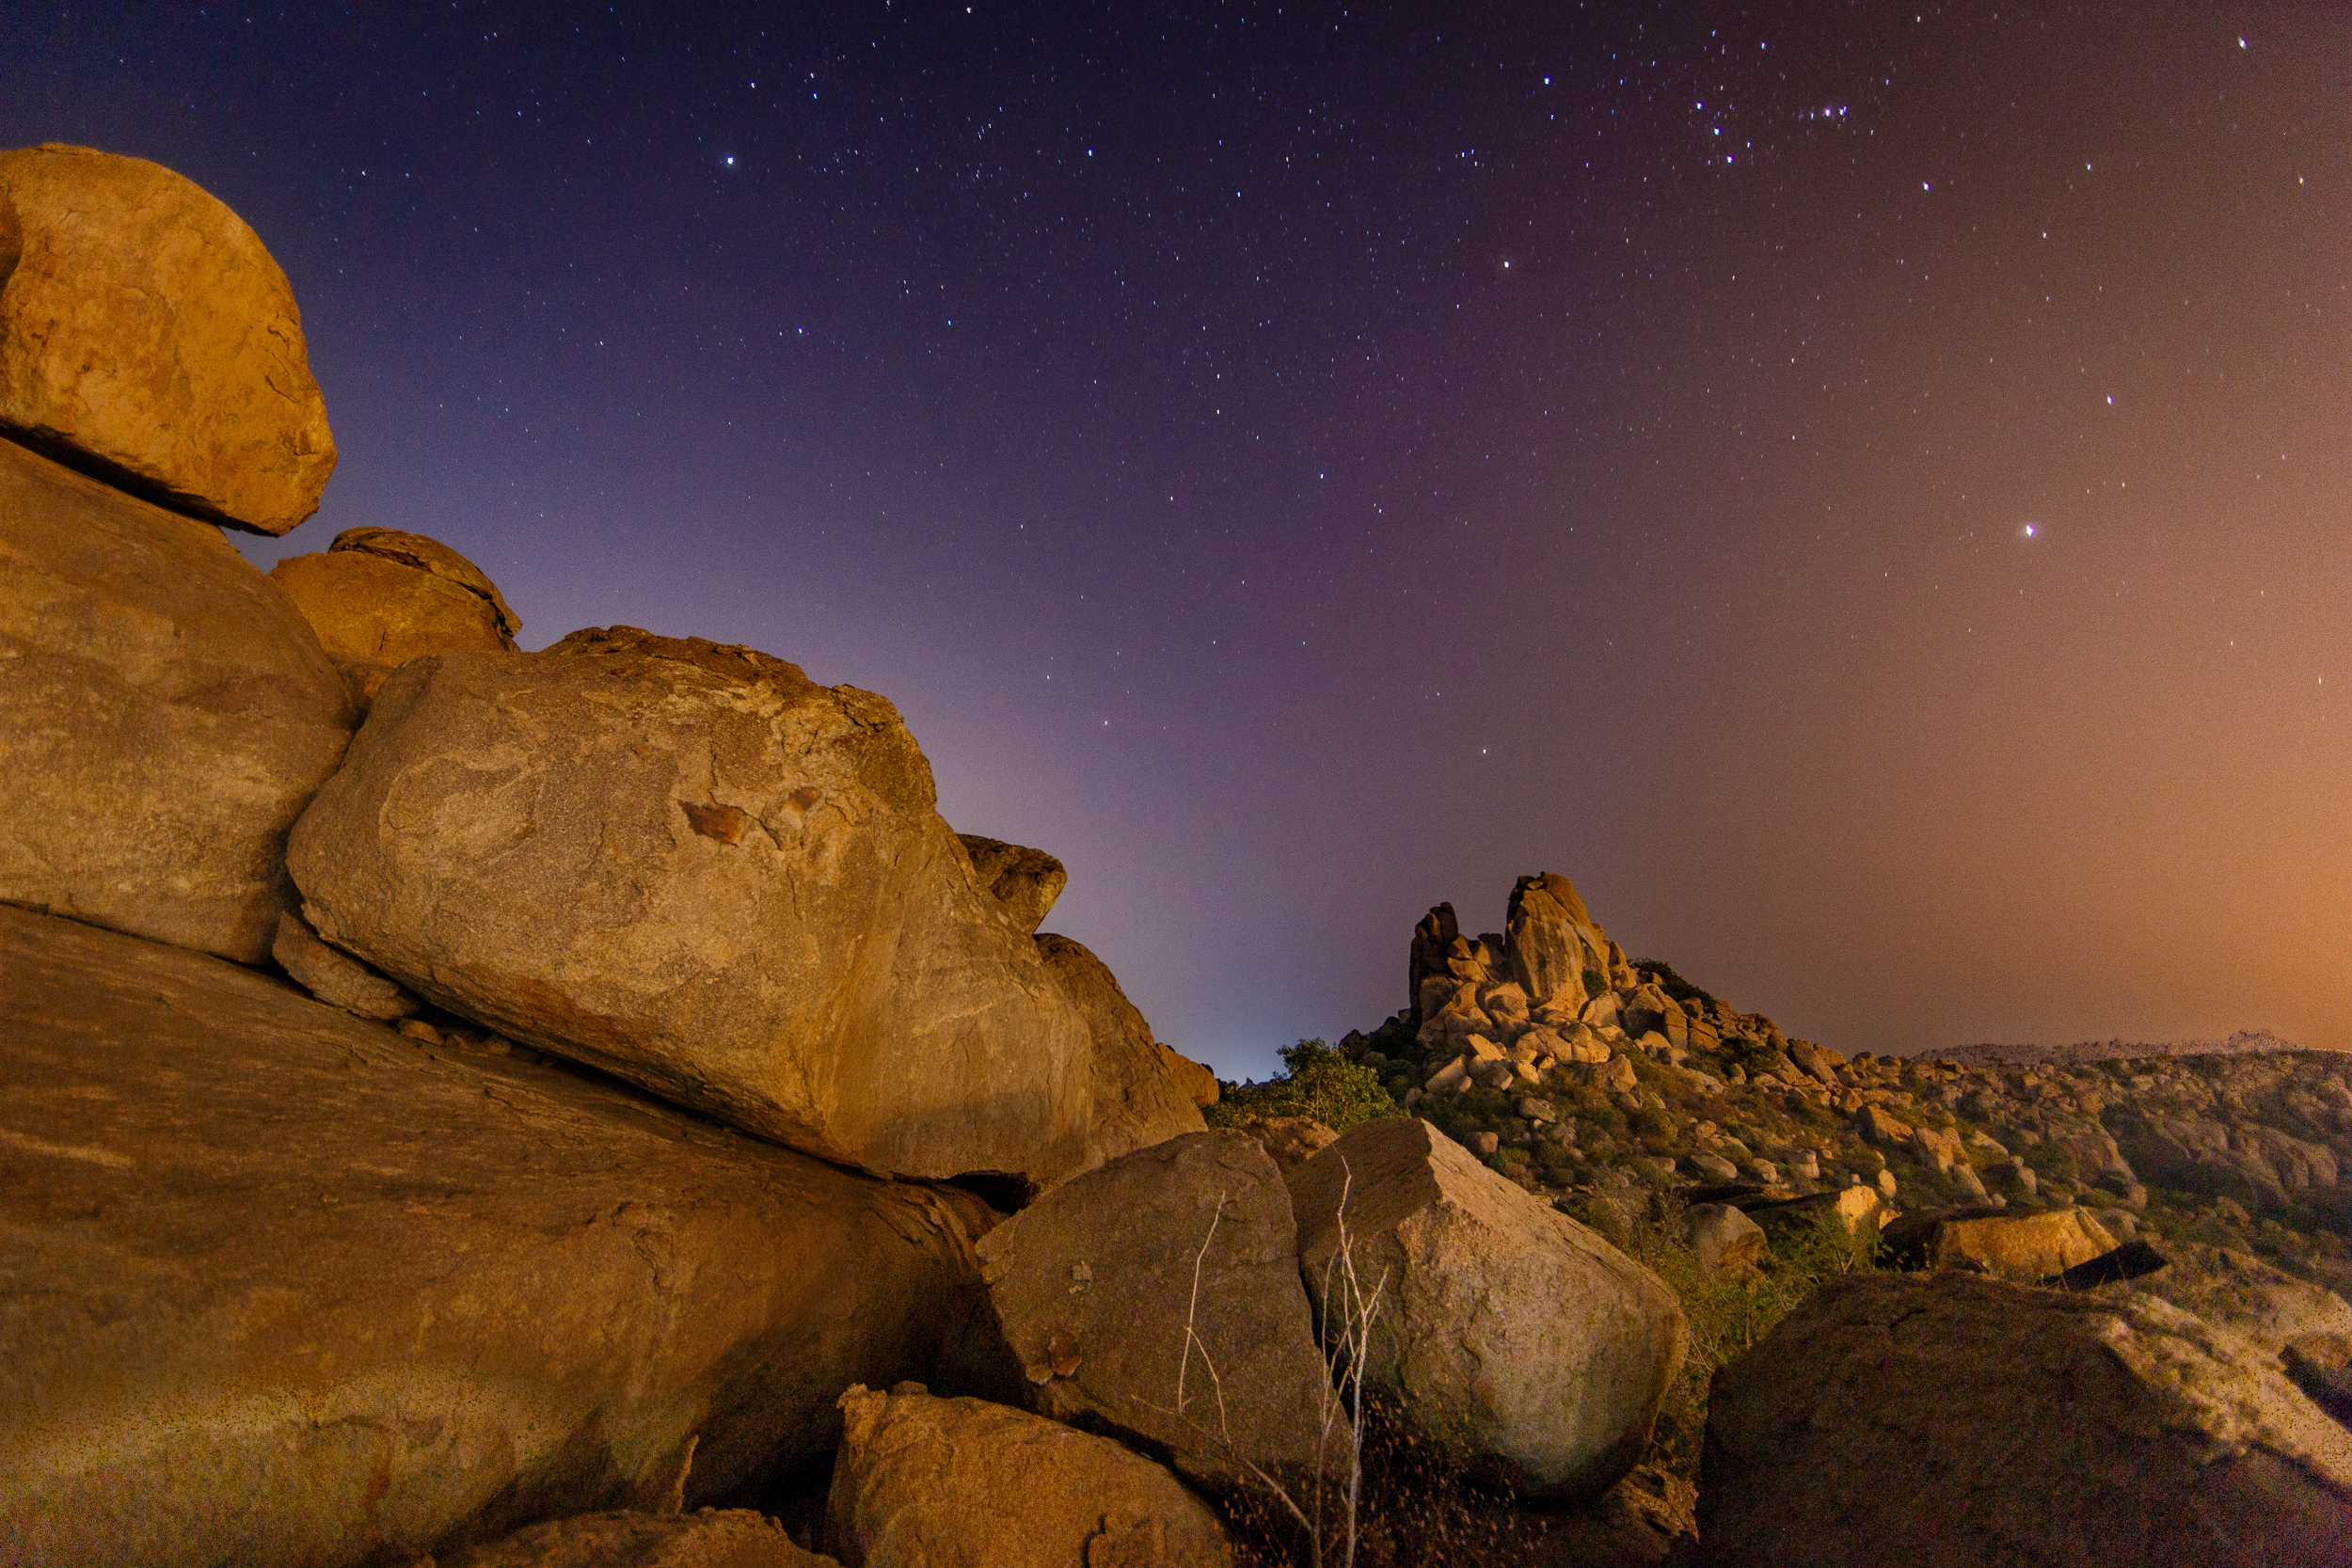 Boulders Under the Sky